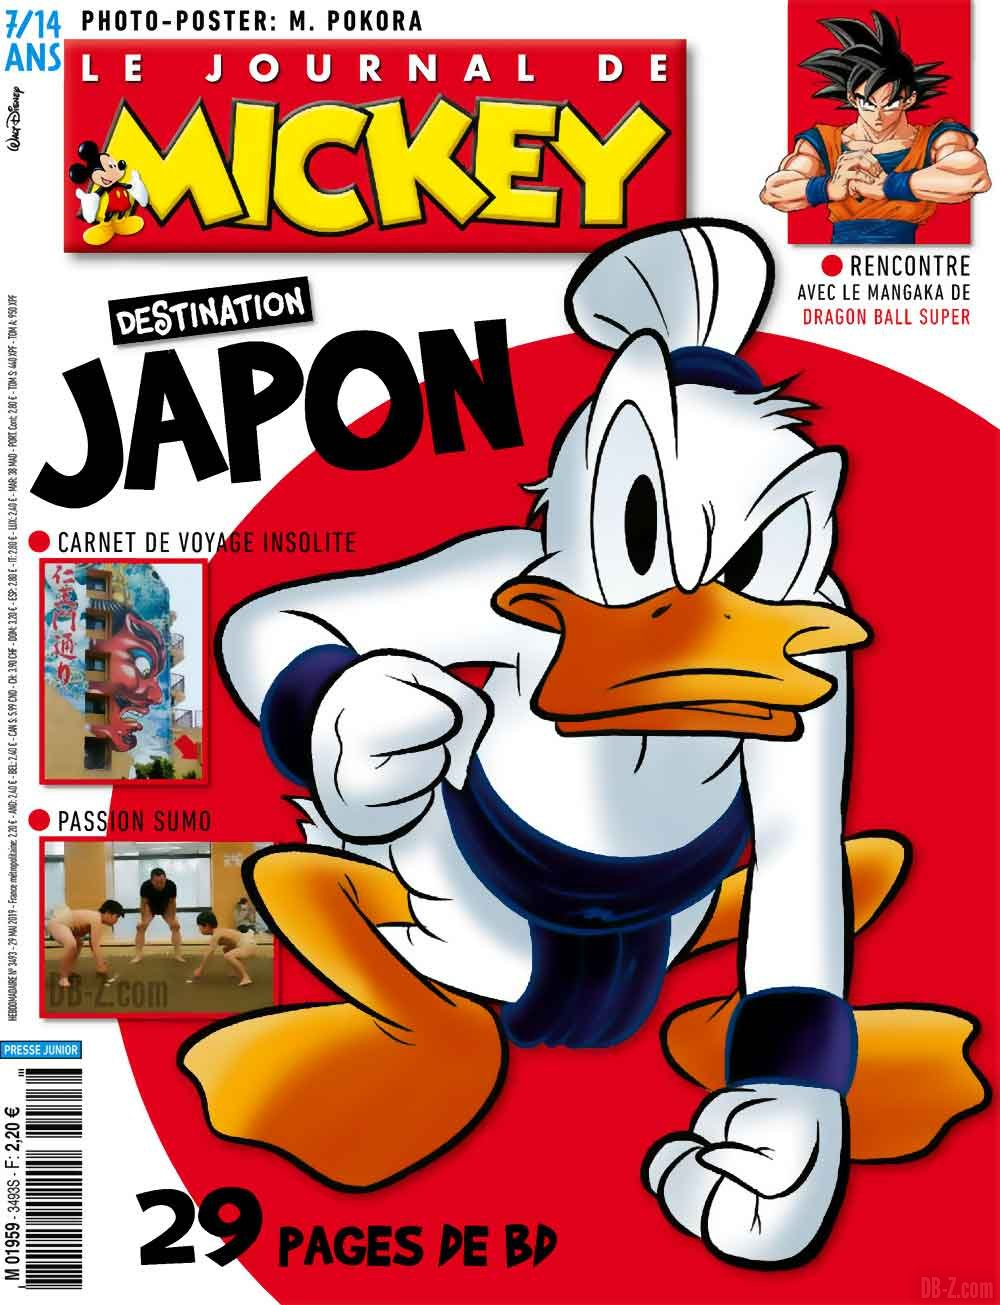 Journal de Mickey Interview de Toyotaro